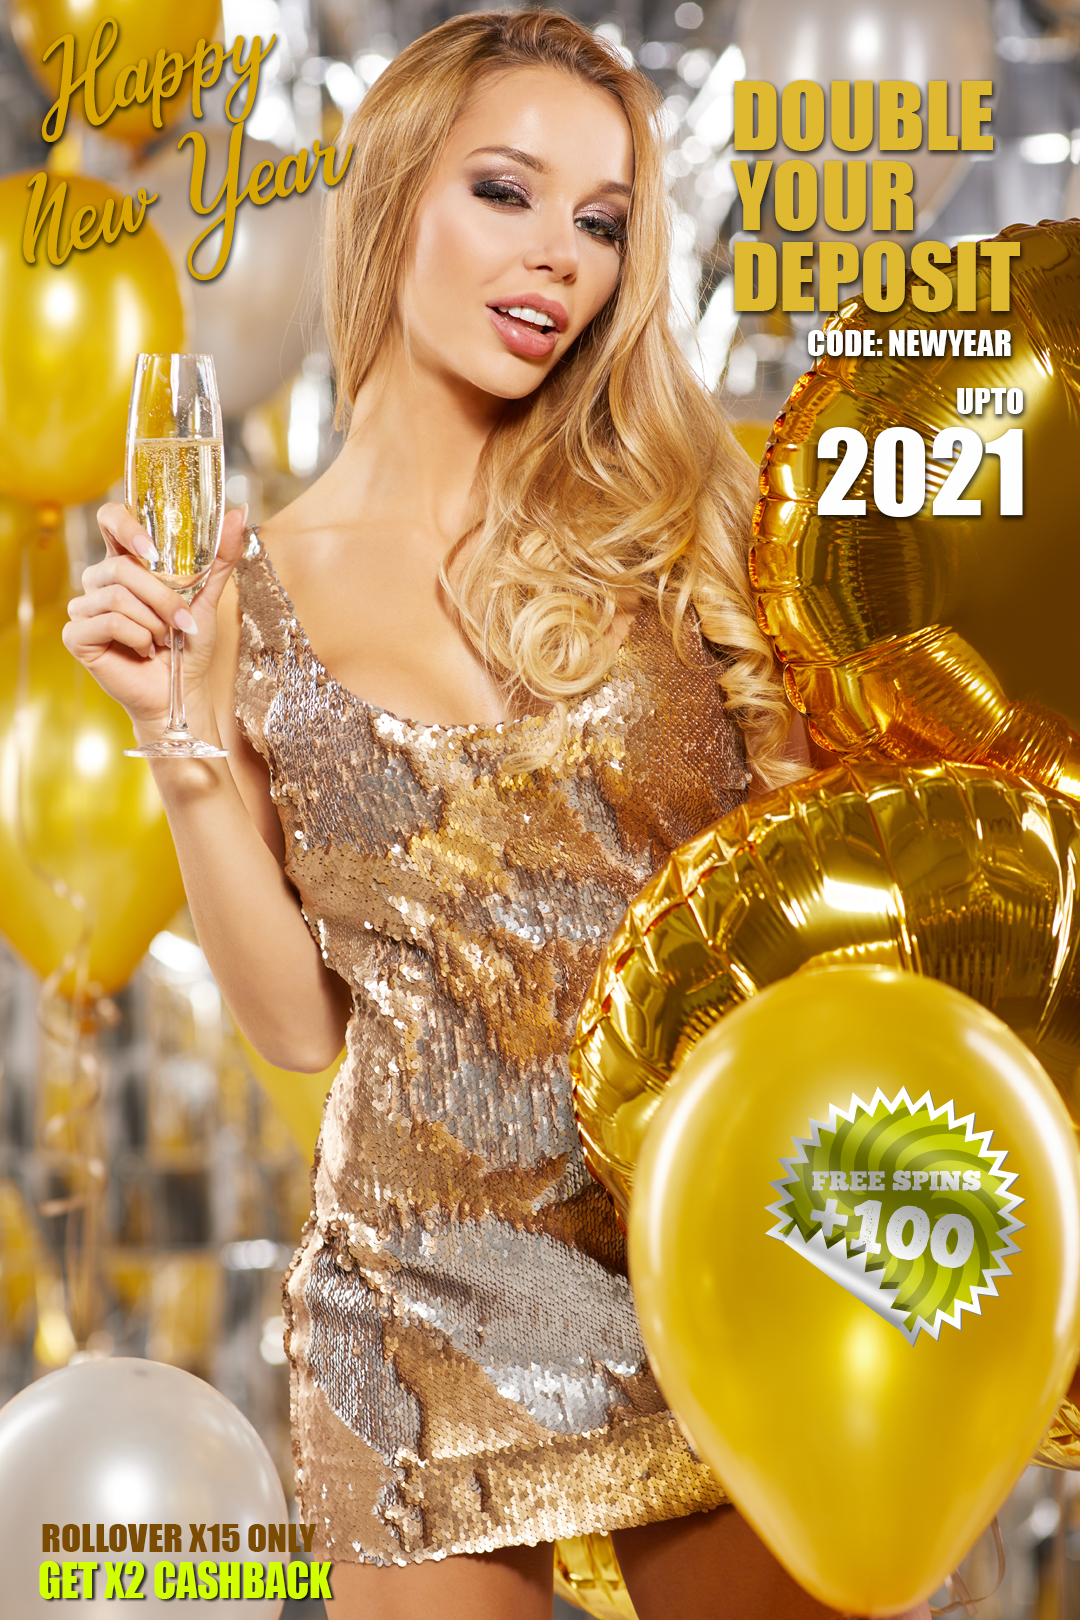 happy-new-year-2021-double-up-bonus-100-free-spins